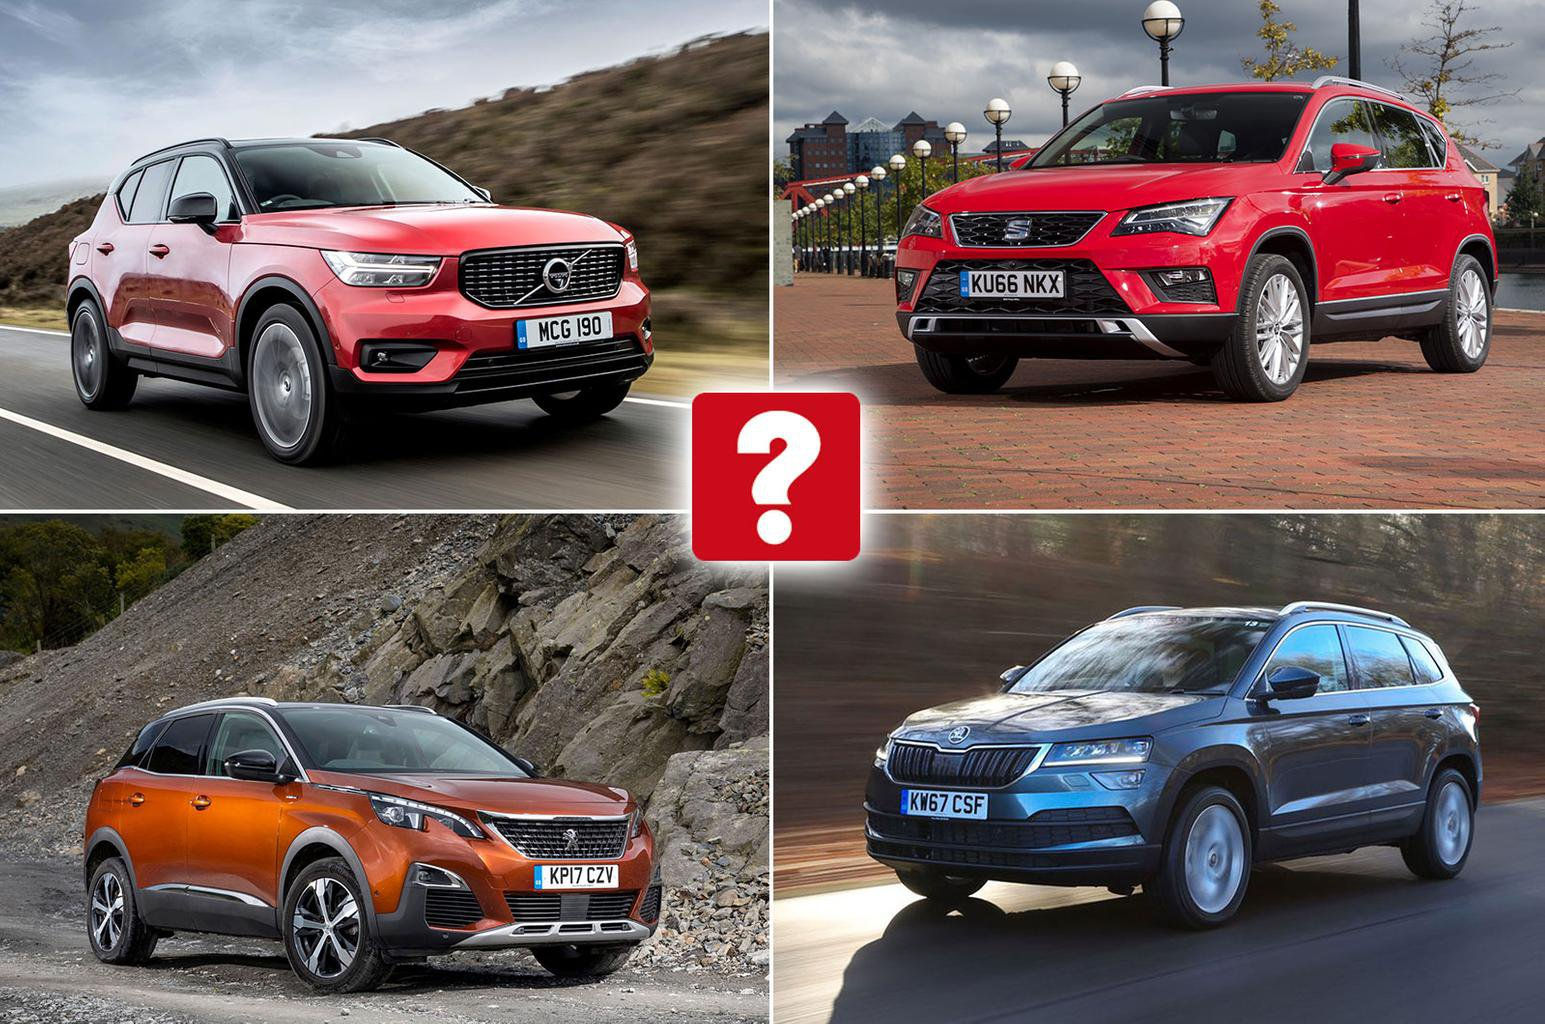 The Best Suv 2019 10 of the Best SUVs for a Family of Four   Discover the best in